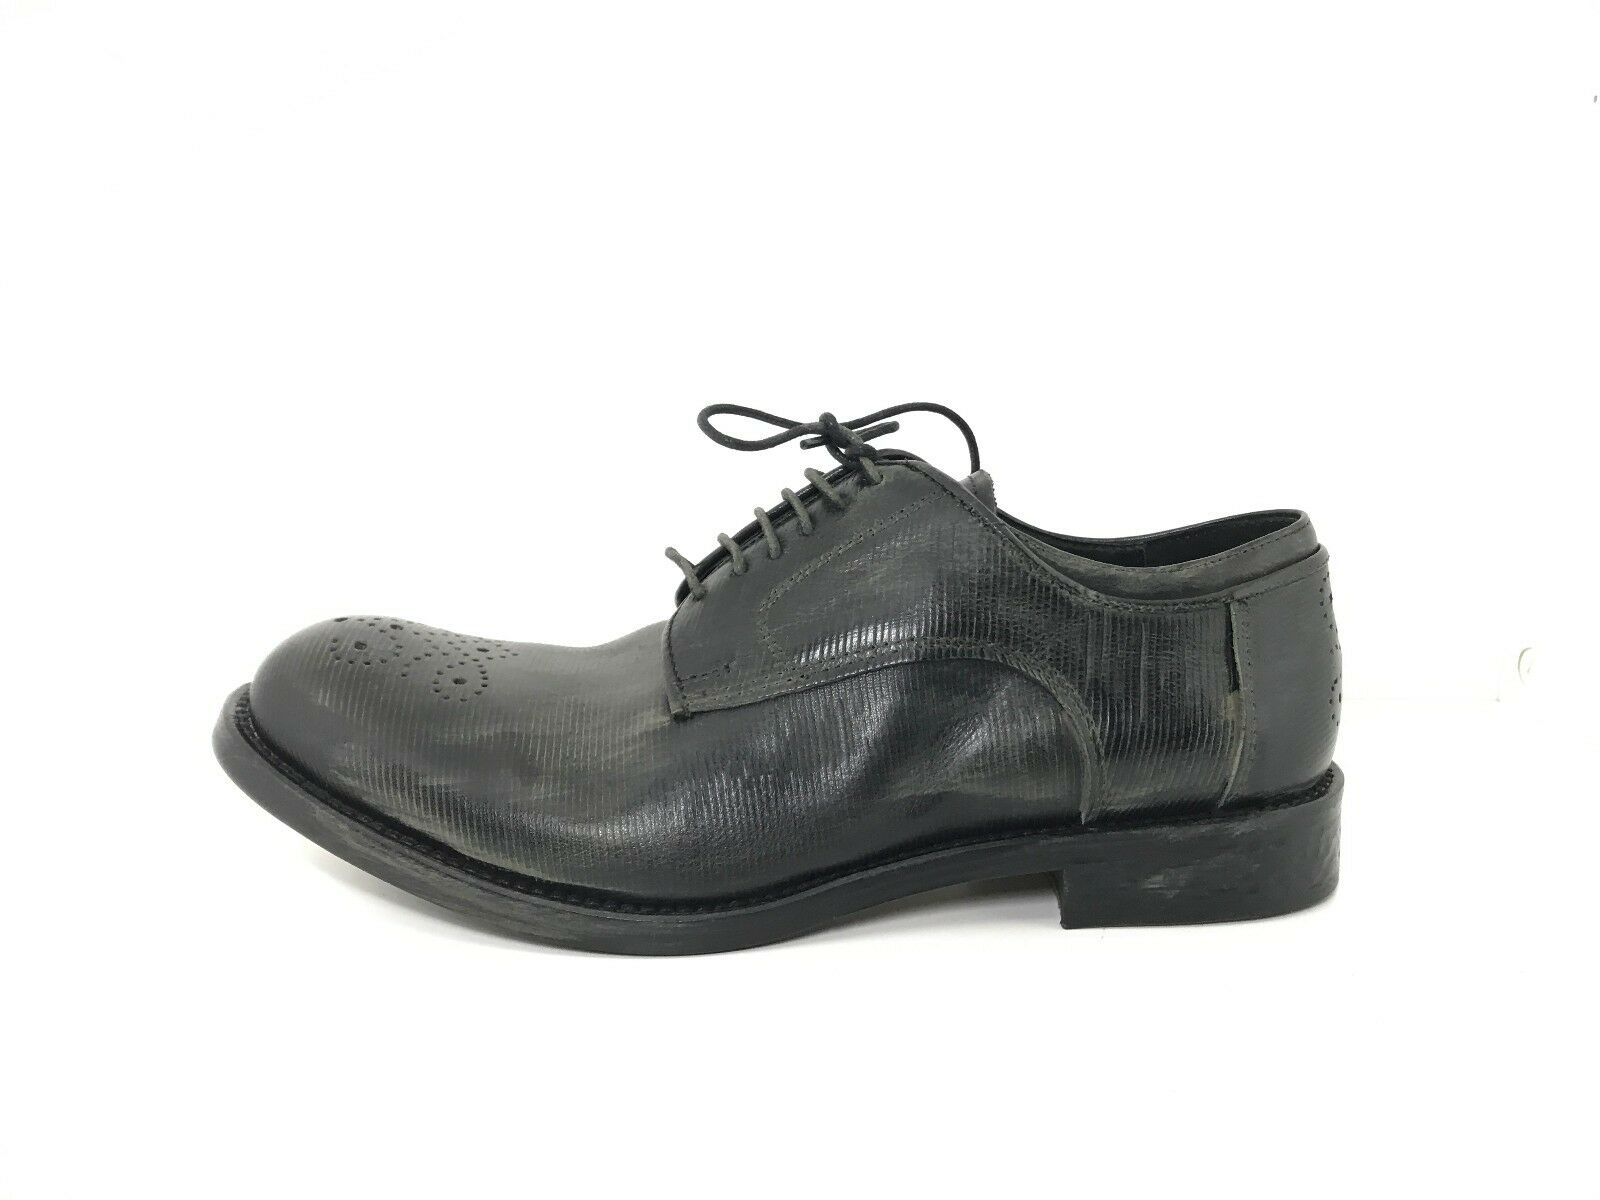 Prem1um scarpe made in leather italy uomo man pelle leather in 100% derby casual classic 584de7